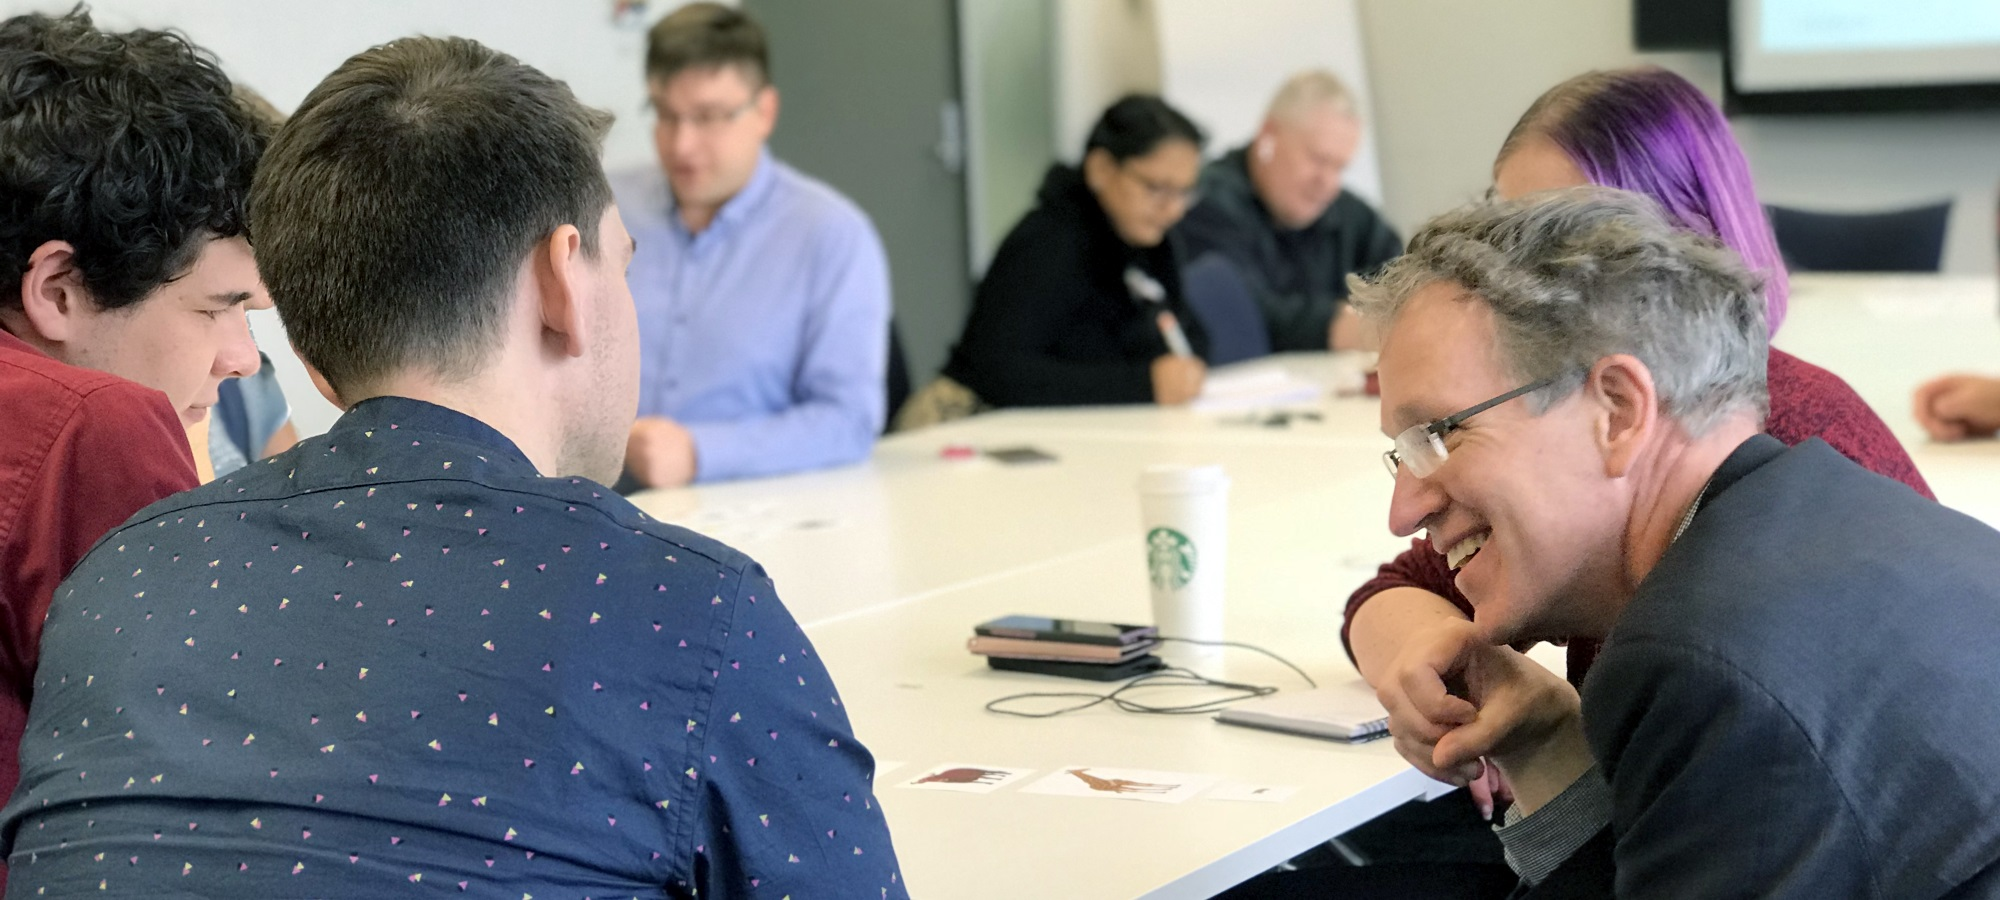 Michael Kane and the Equinox IT team participating in an Agile user stories workshop